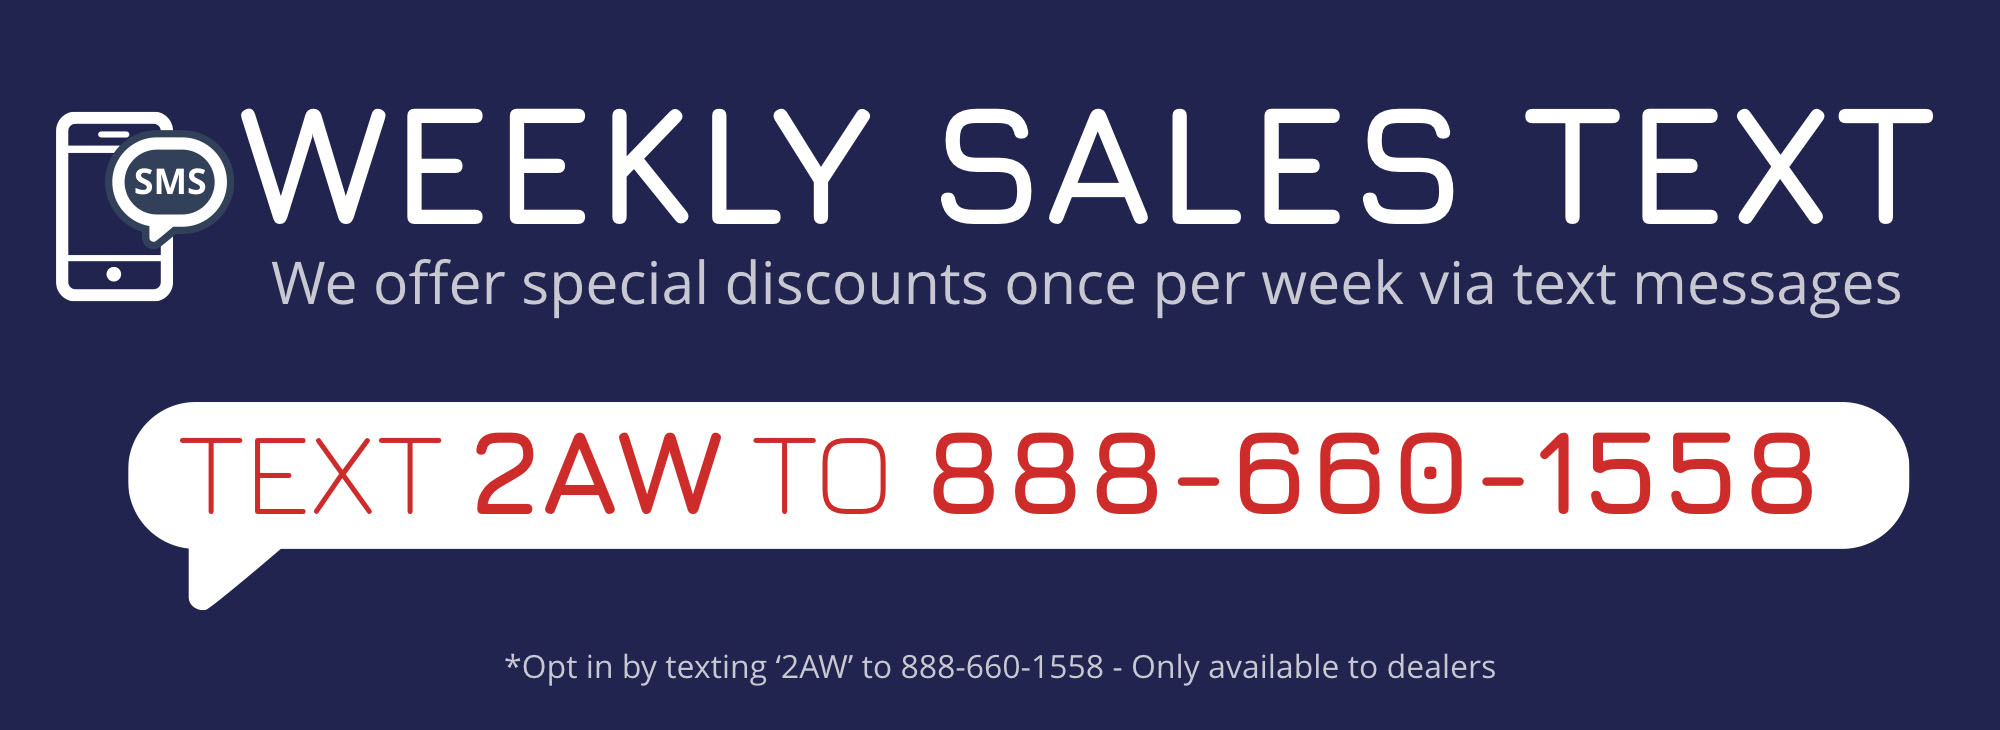 Weekly Sales Text